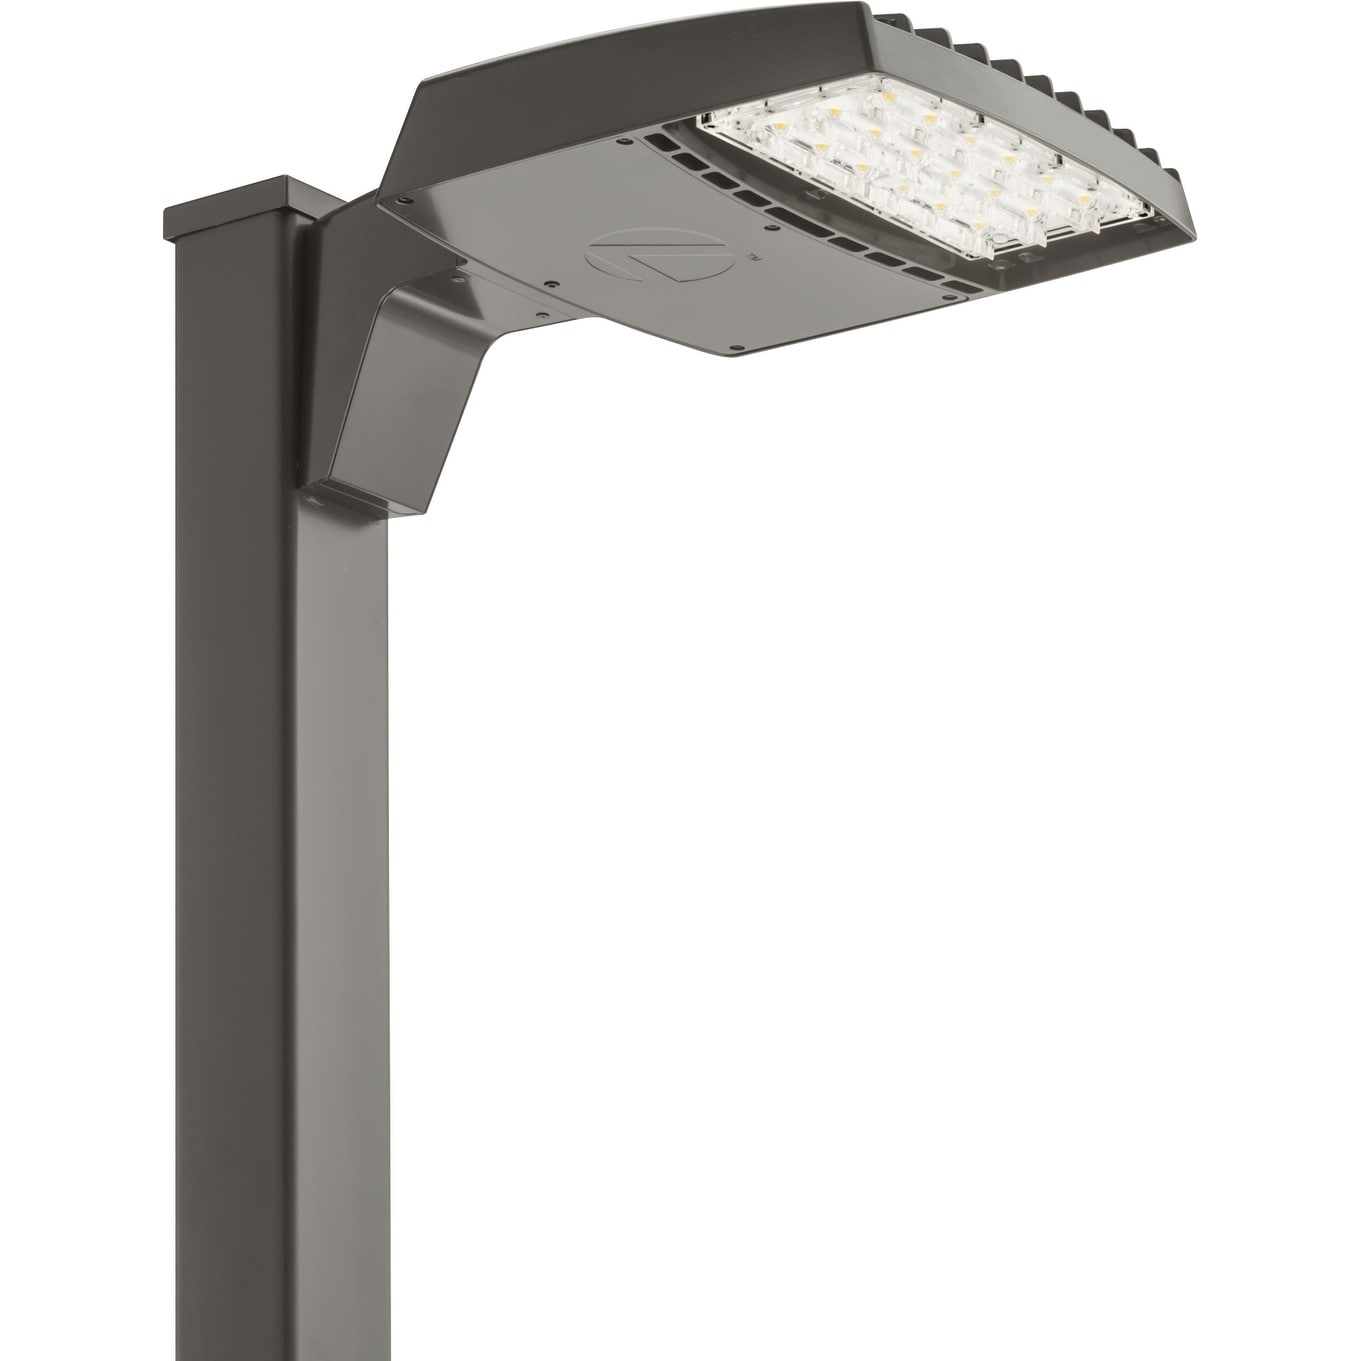 Lithonia Lighting Rsx1 Led P4 40k R5 Mvolt Rpa Fao Ddbxd Outdoor Area Light 4000k Bronze